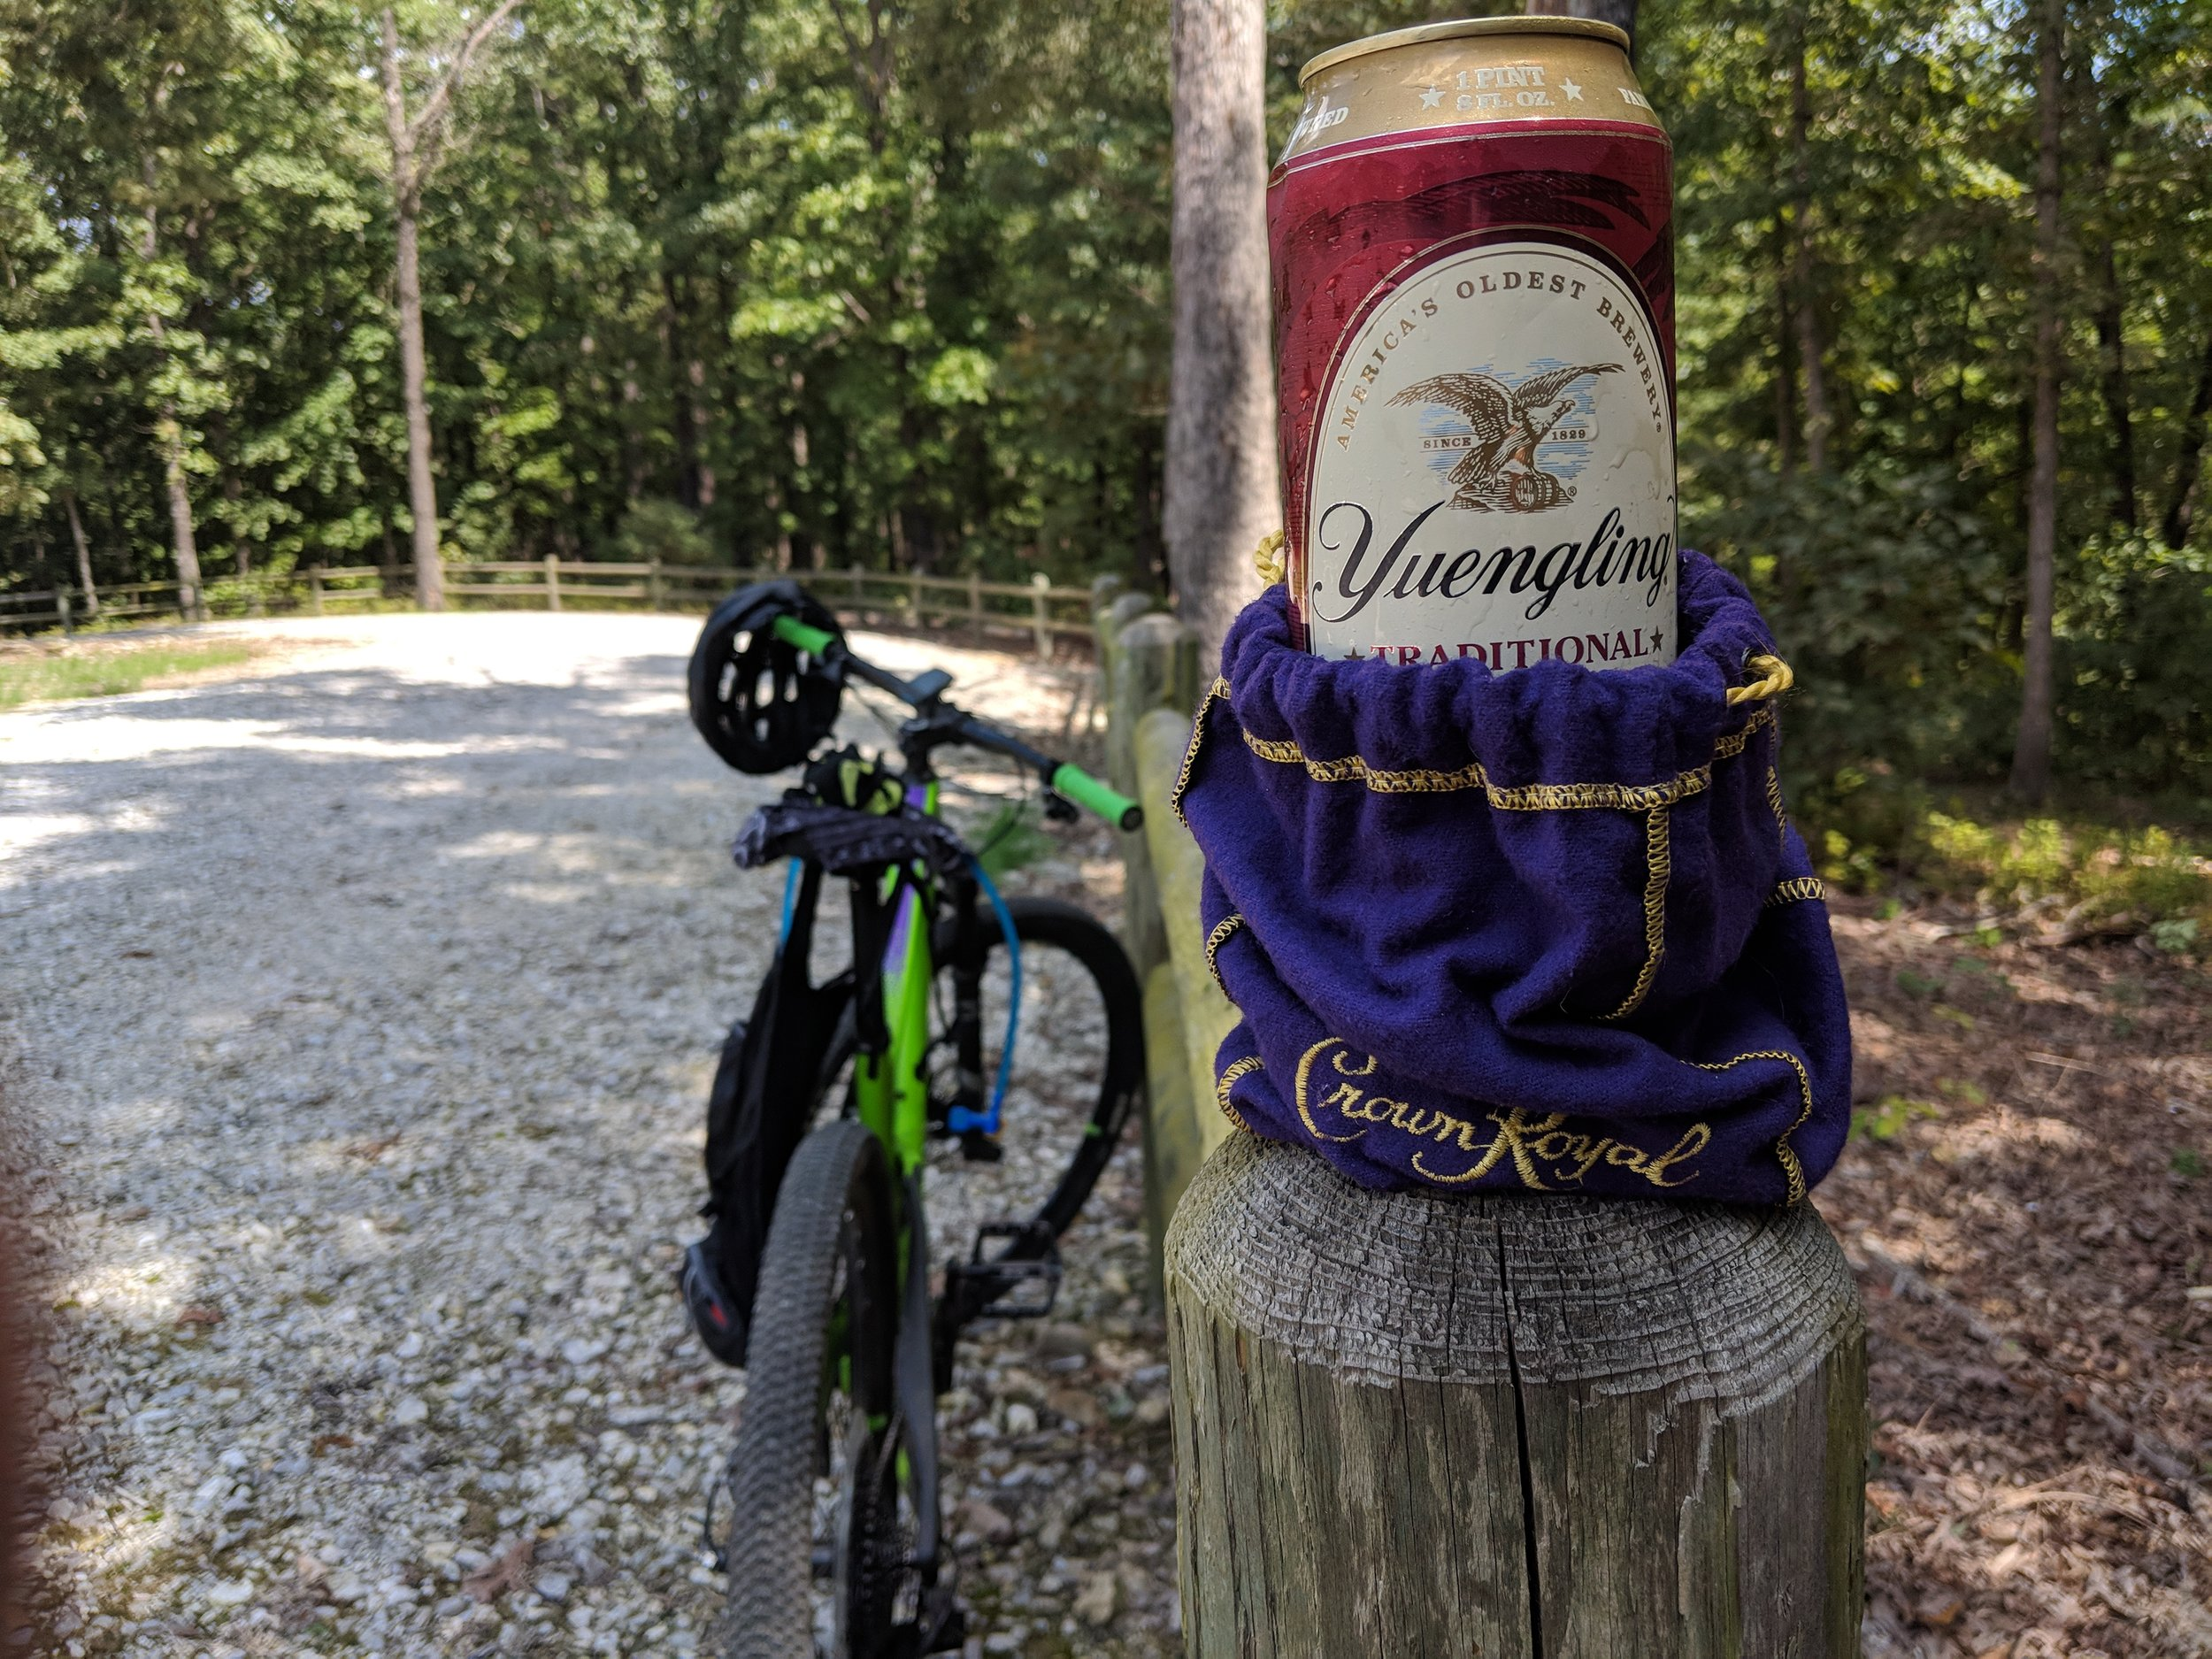 When you forget your coozies, you make do with what you have.